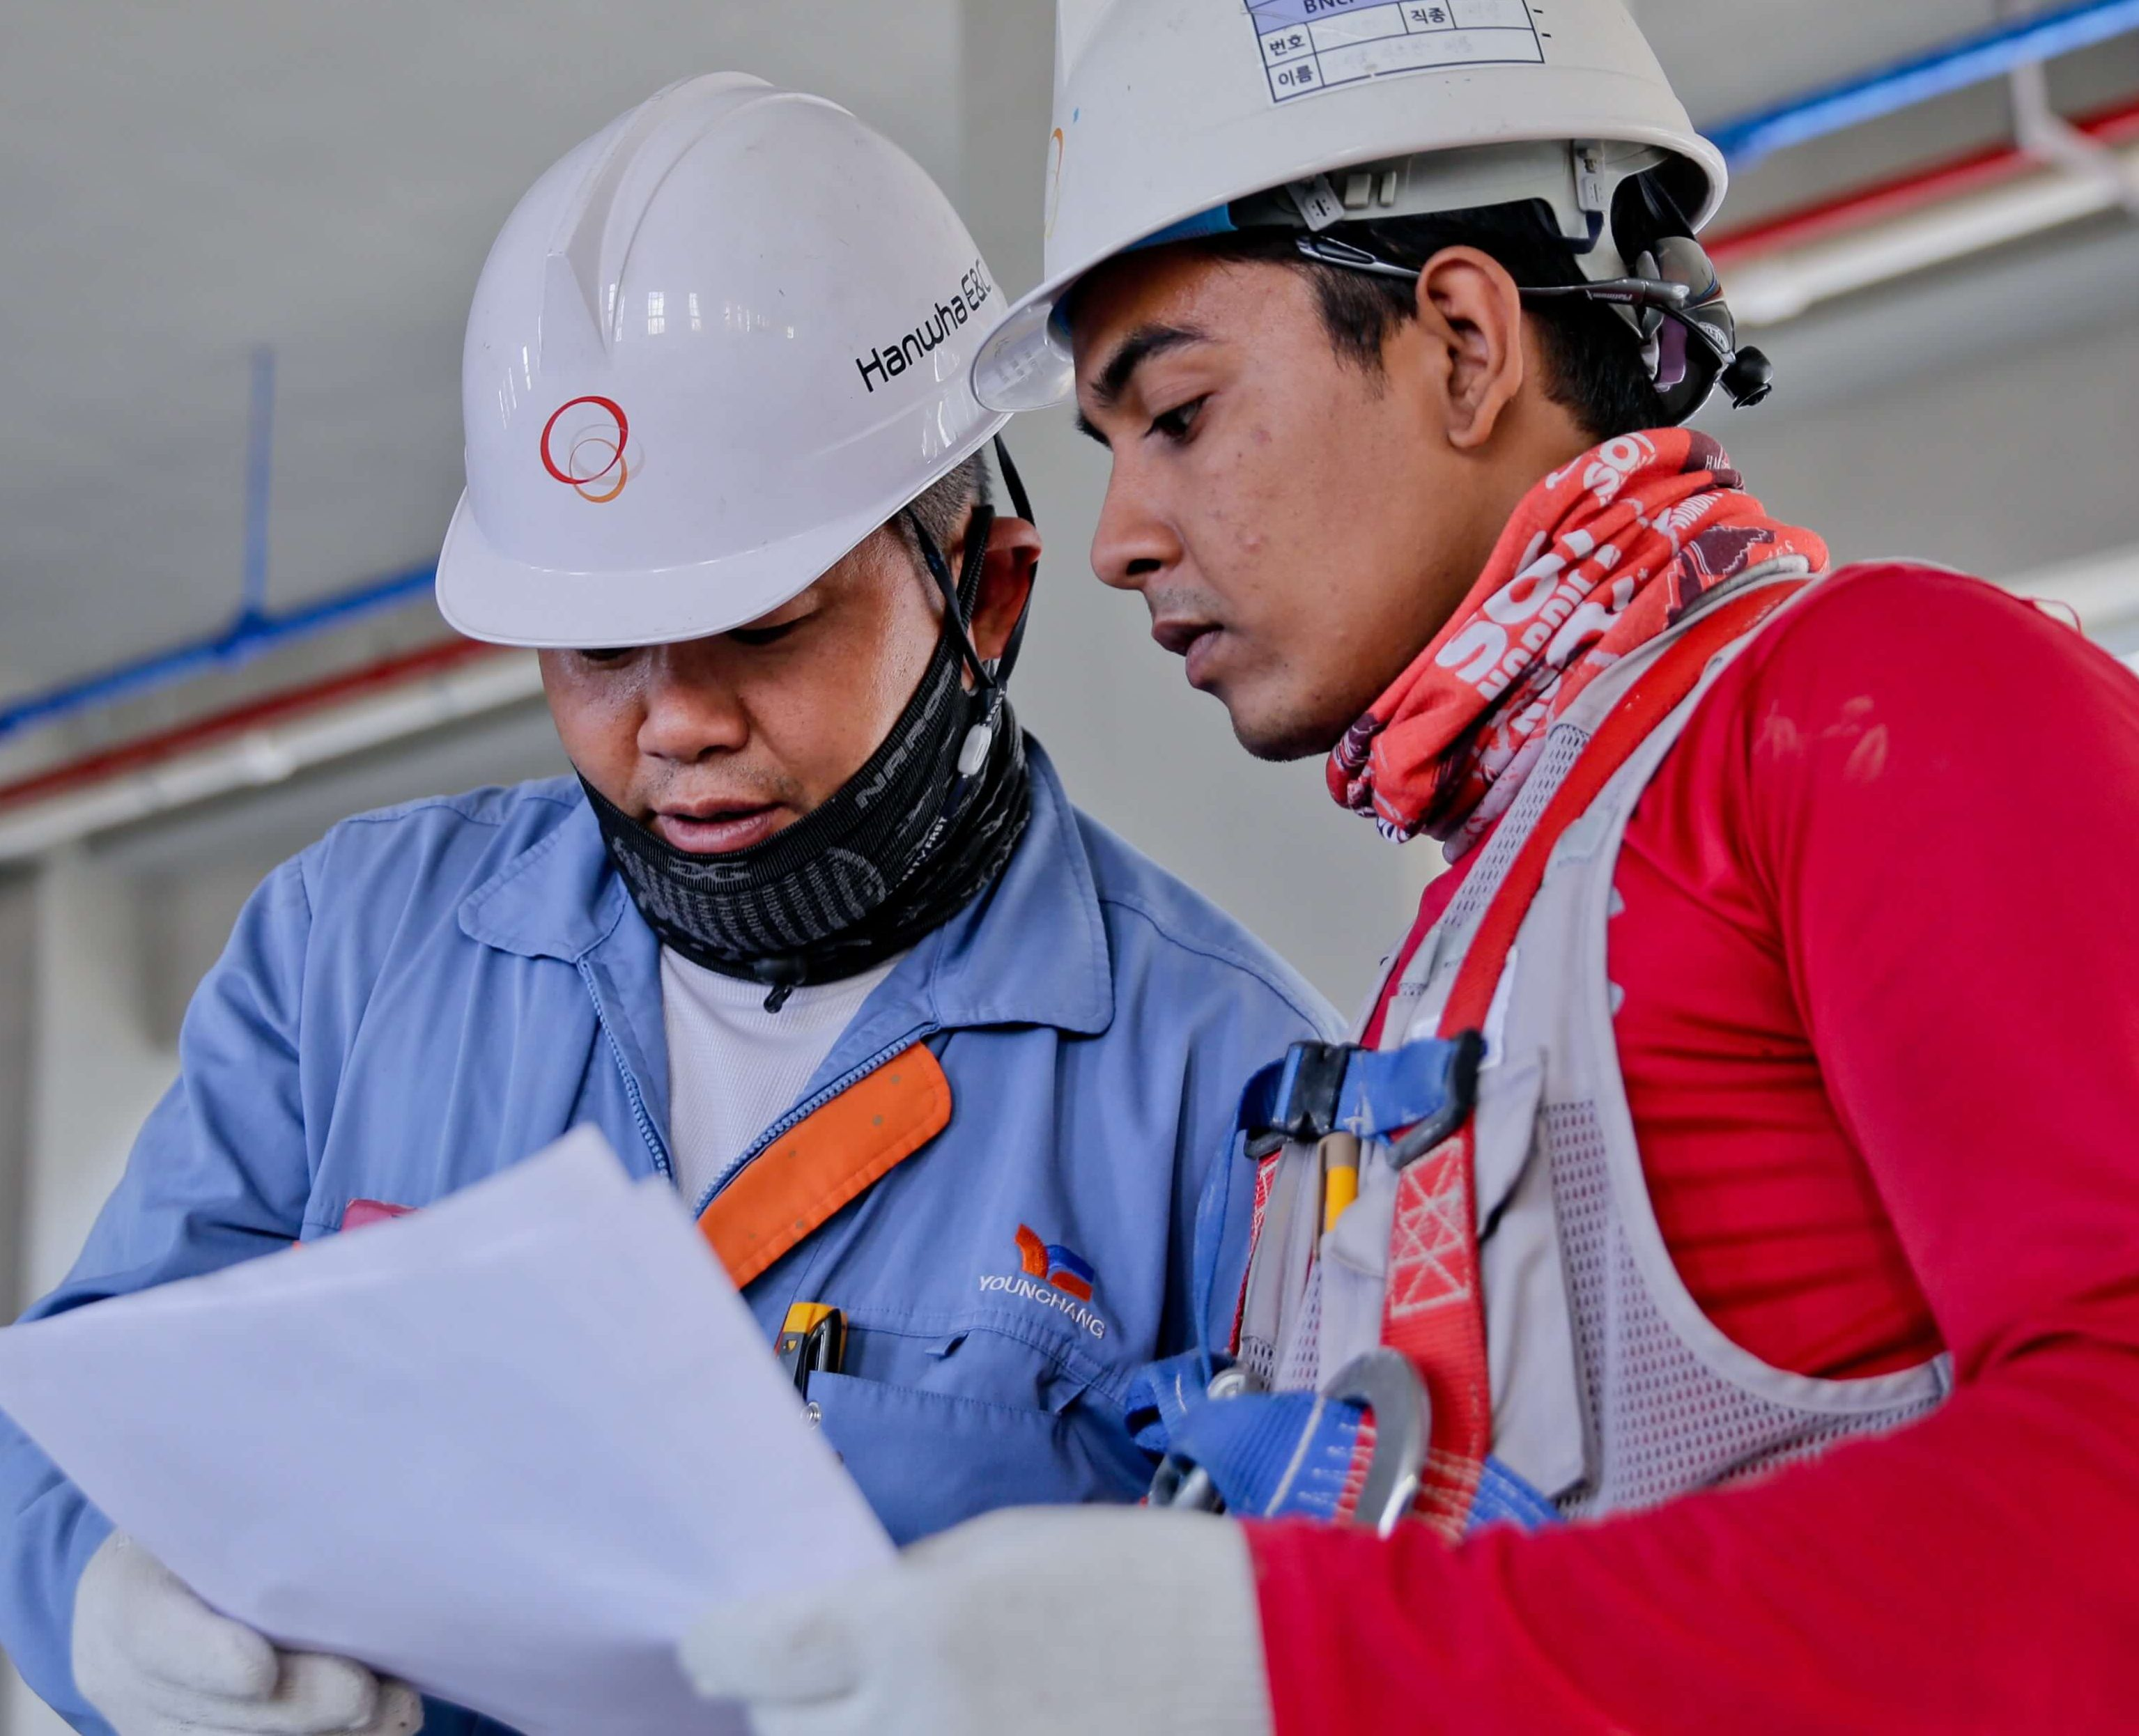 One worker consulting another